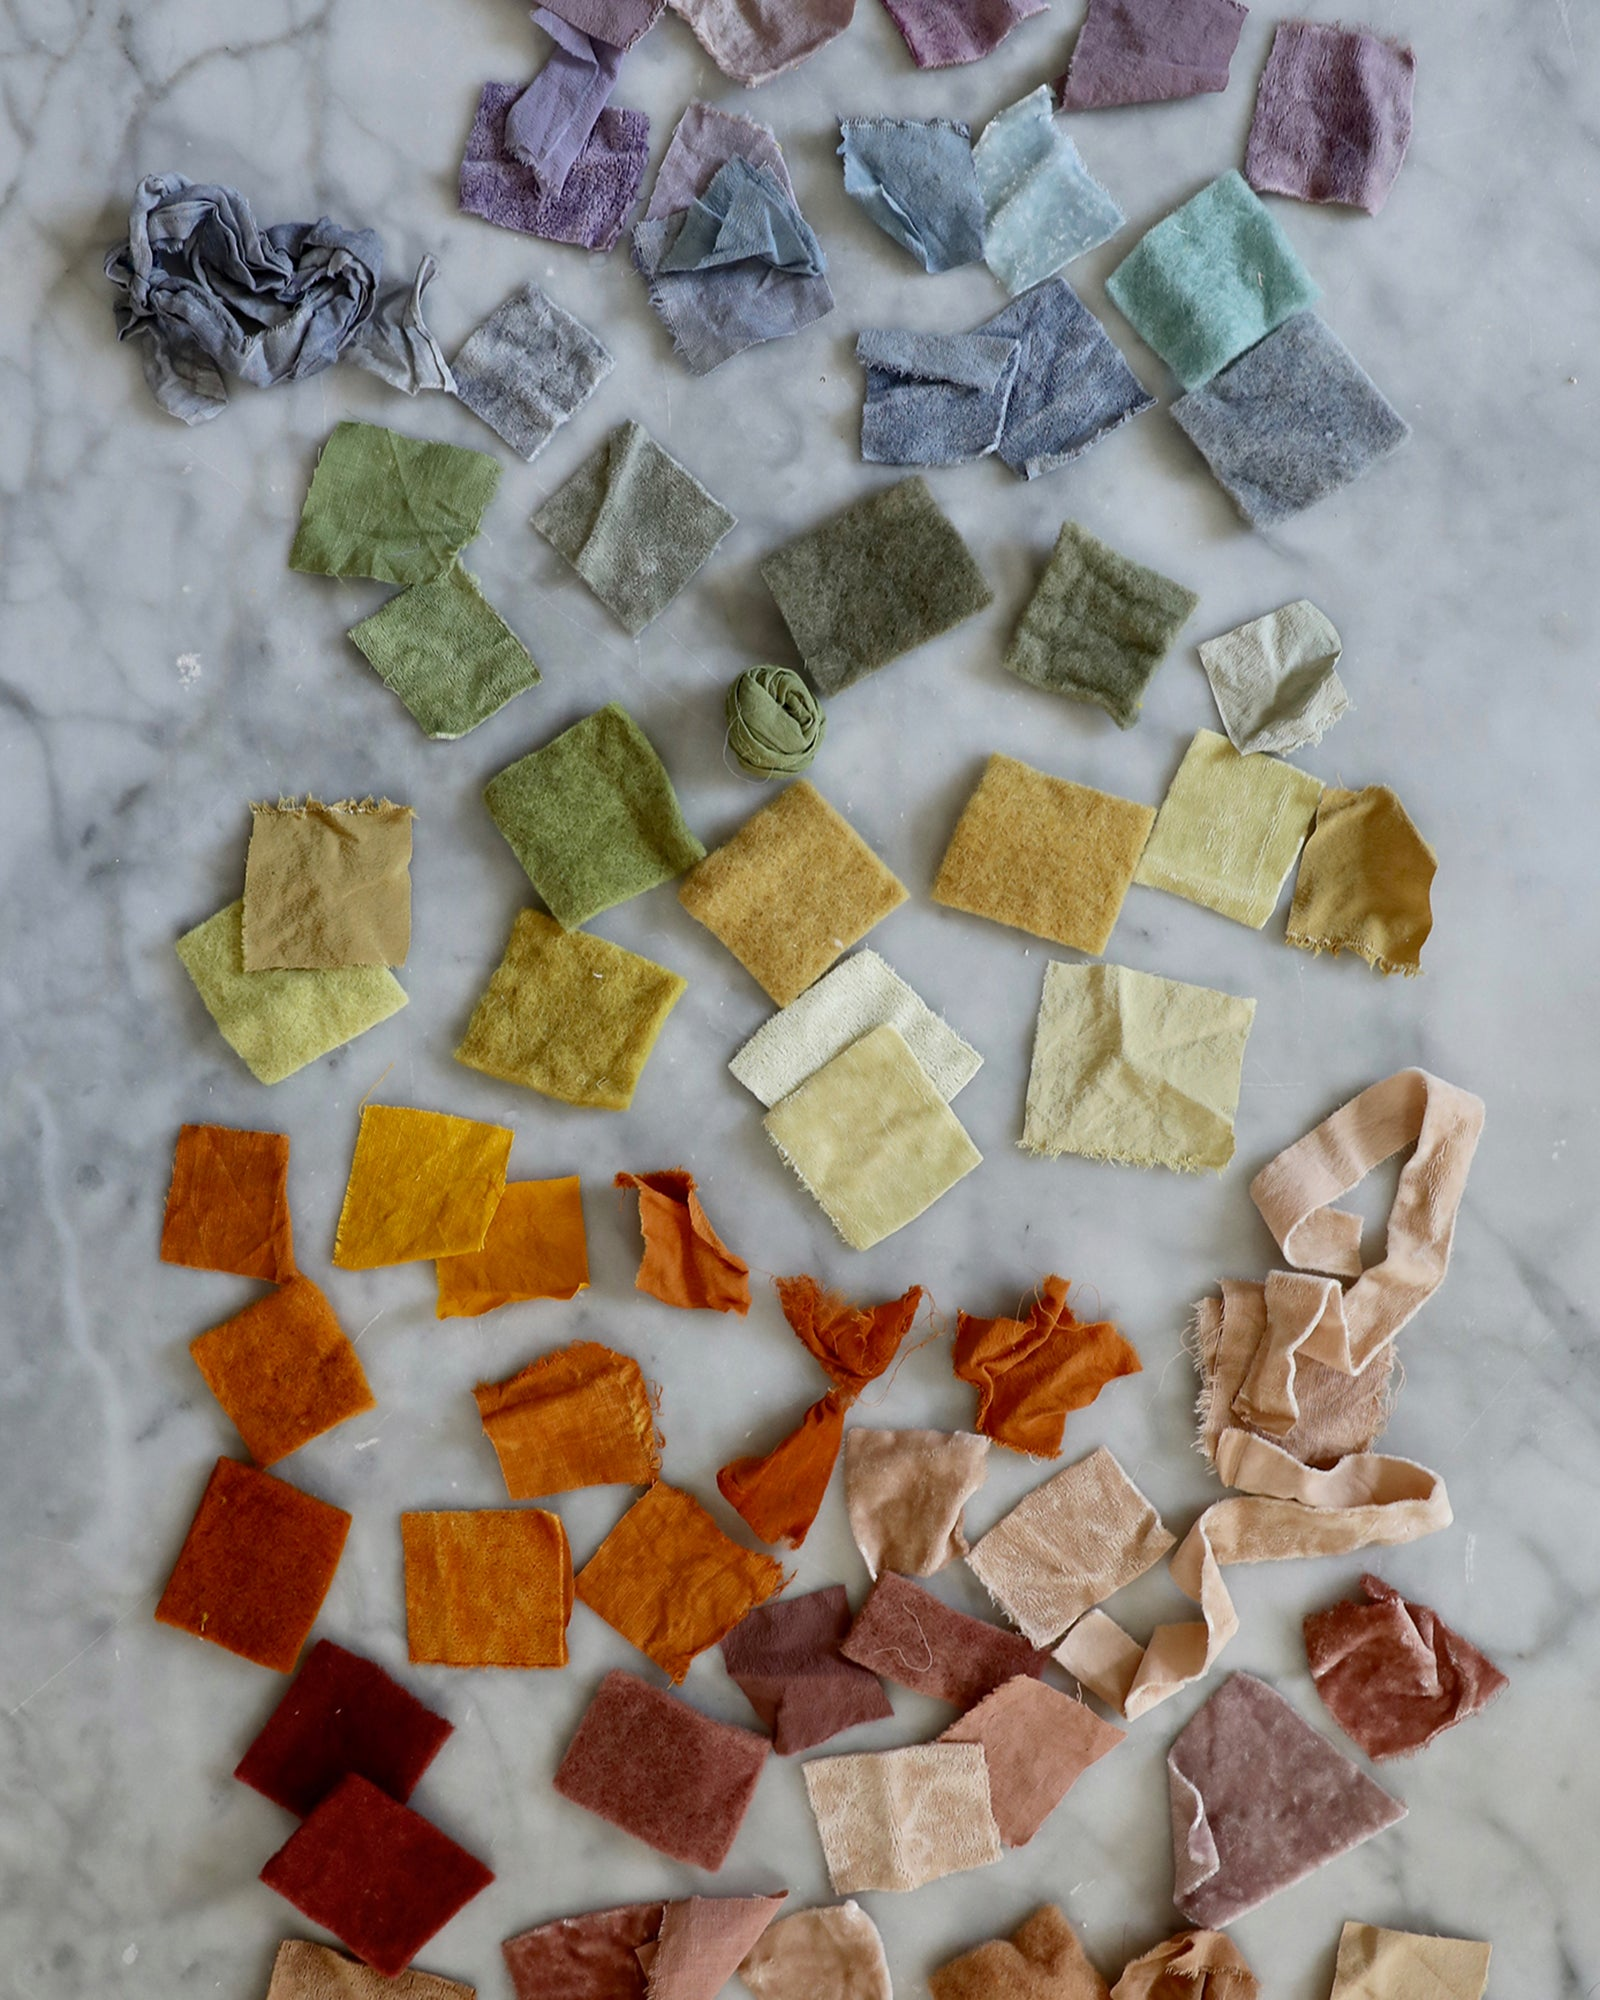 Capturing Color from Food Waste, Natural Dyeing Workshop with Maggie Pate